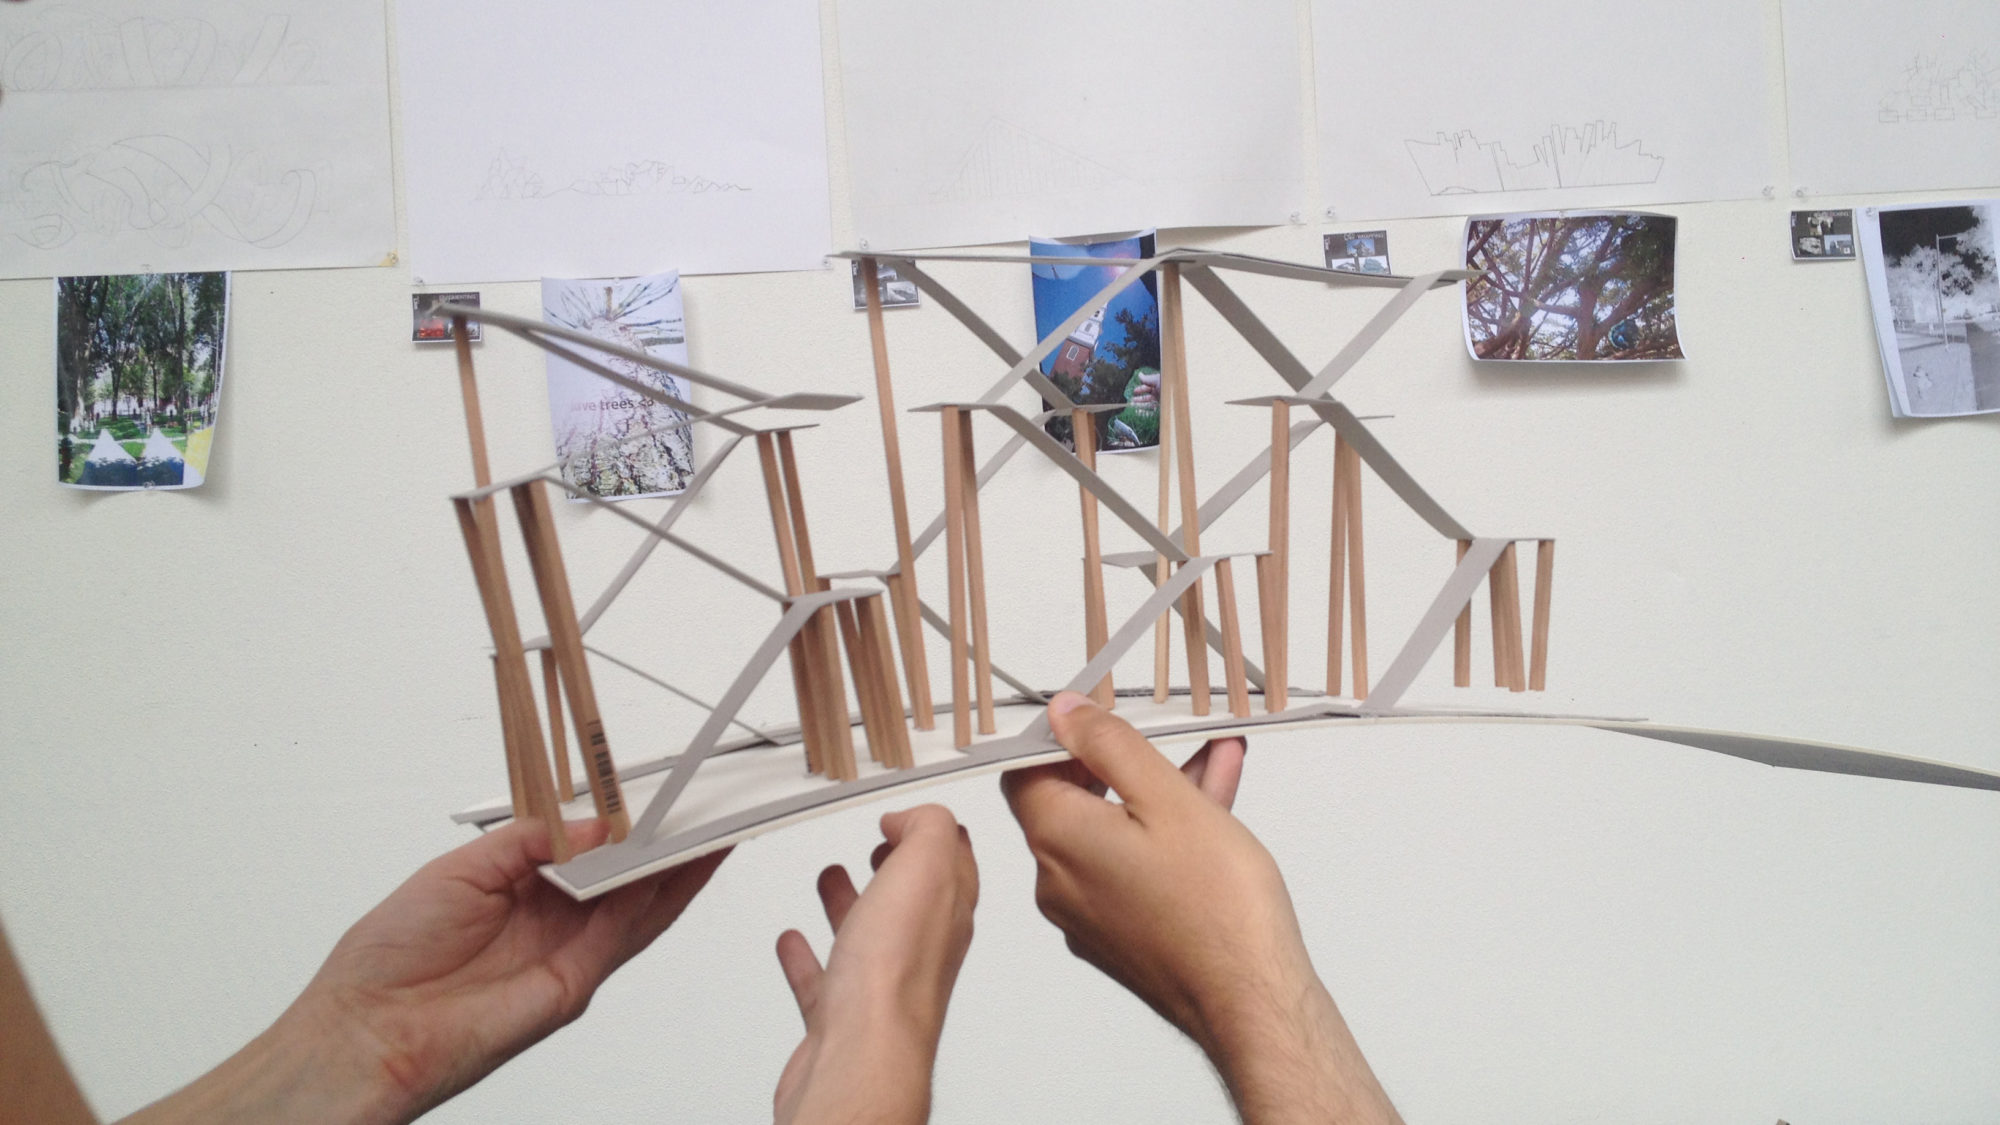 Holding architecture model